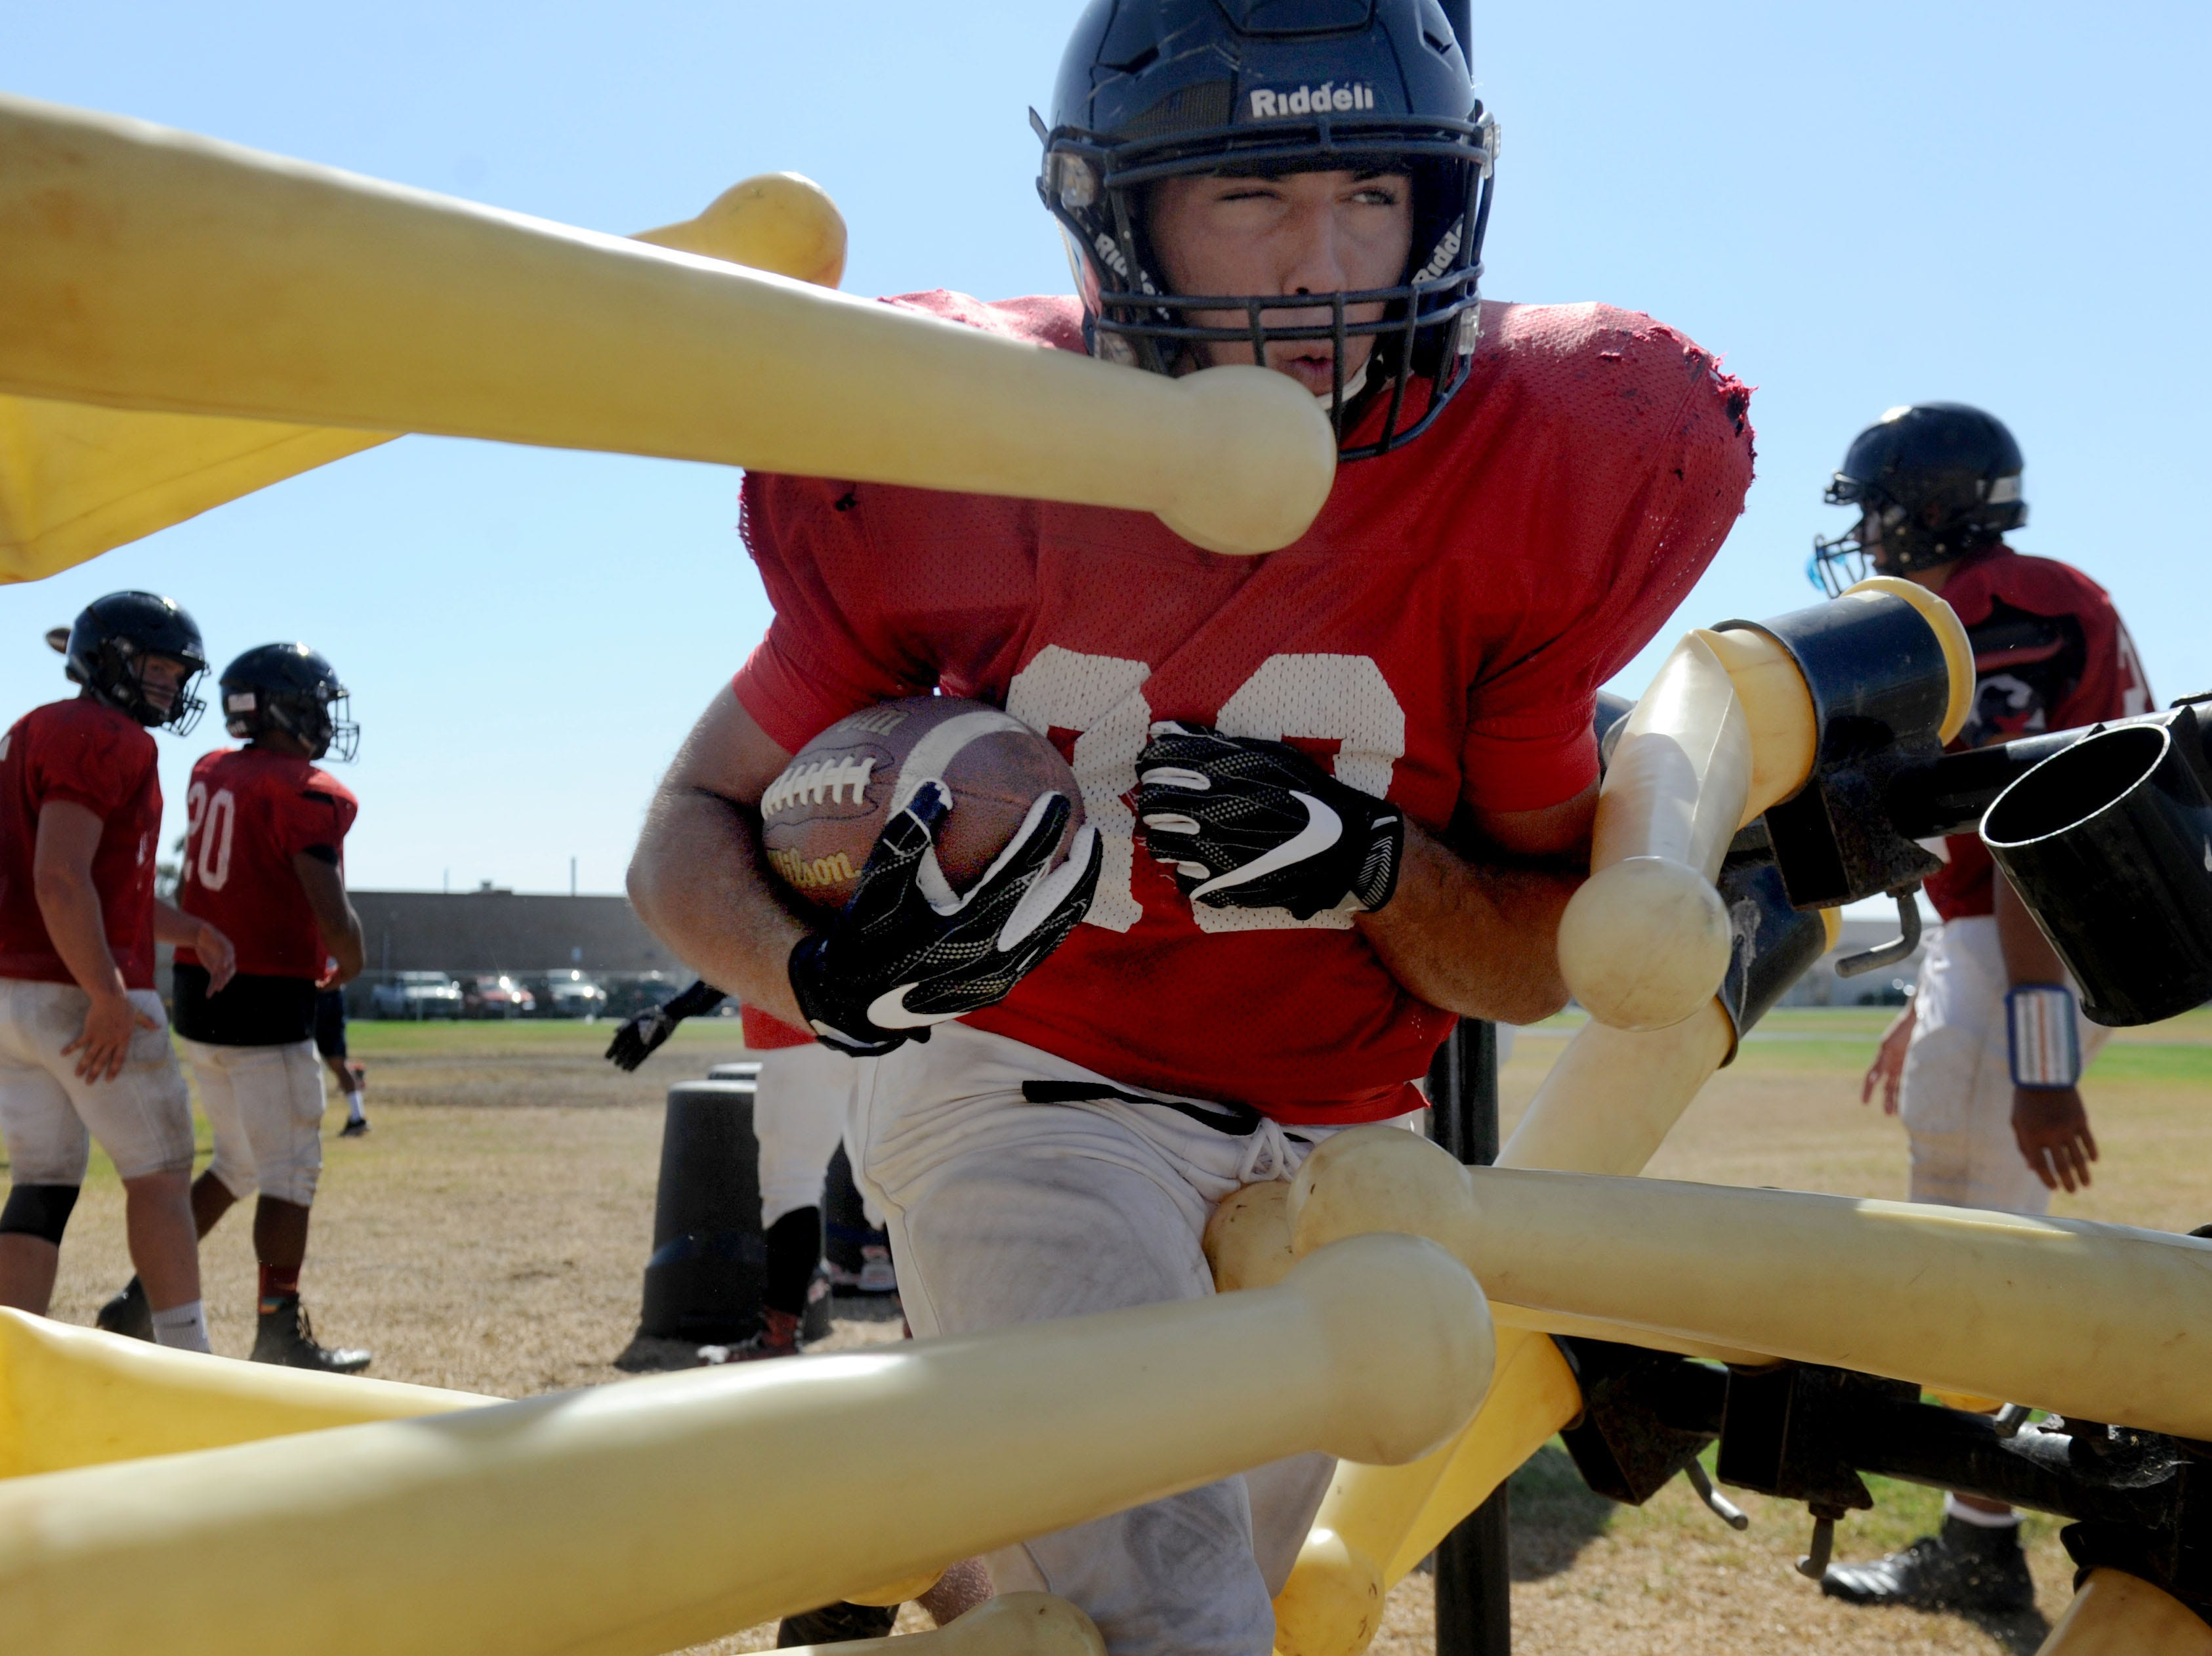 Running back Moses Marsico goes through some drills at Rio Mesa High practice. The Spartans open the season at Camarillo High on Friday night.